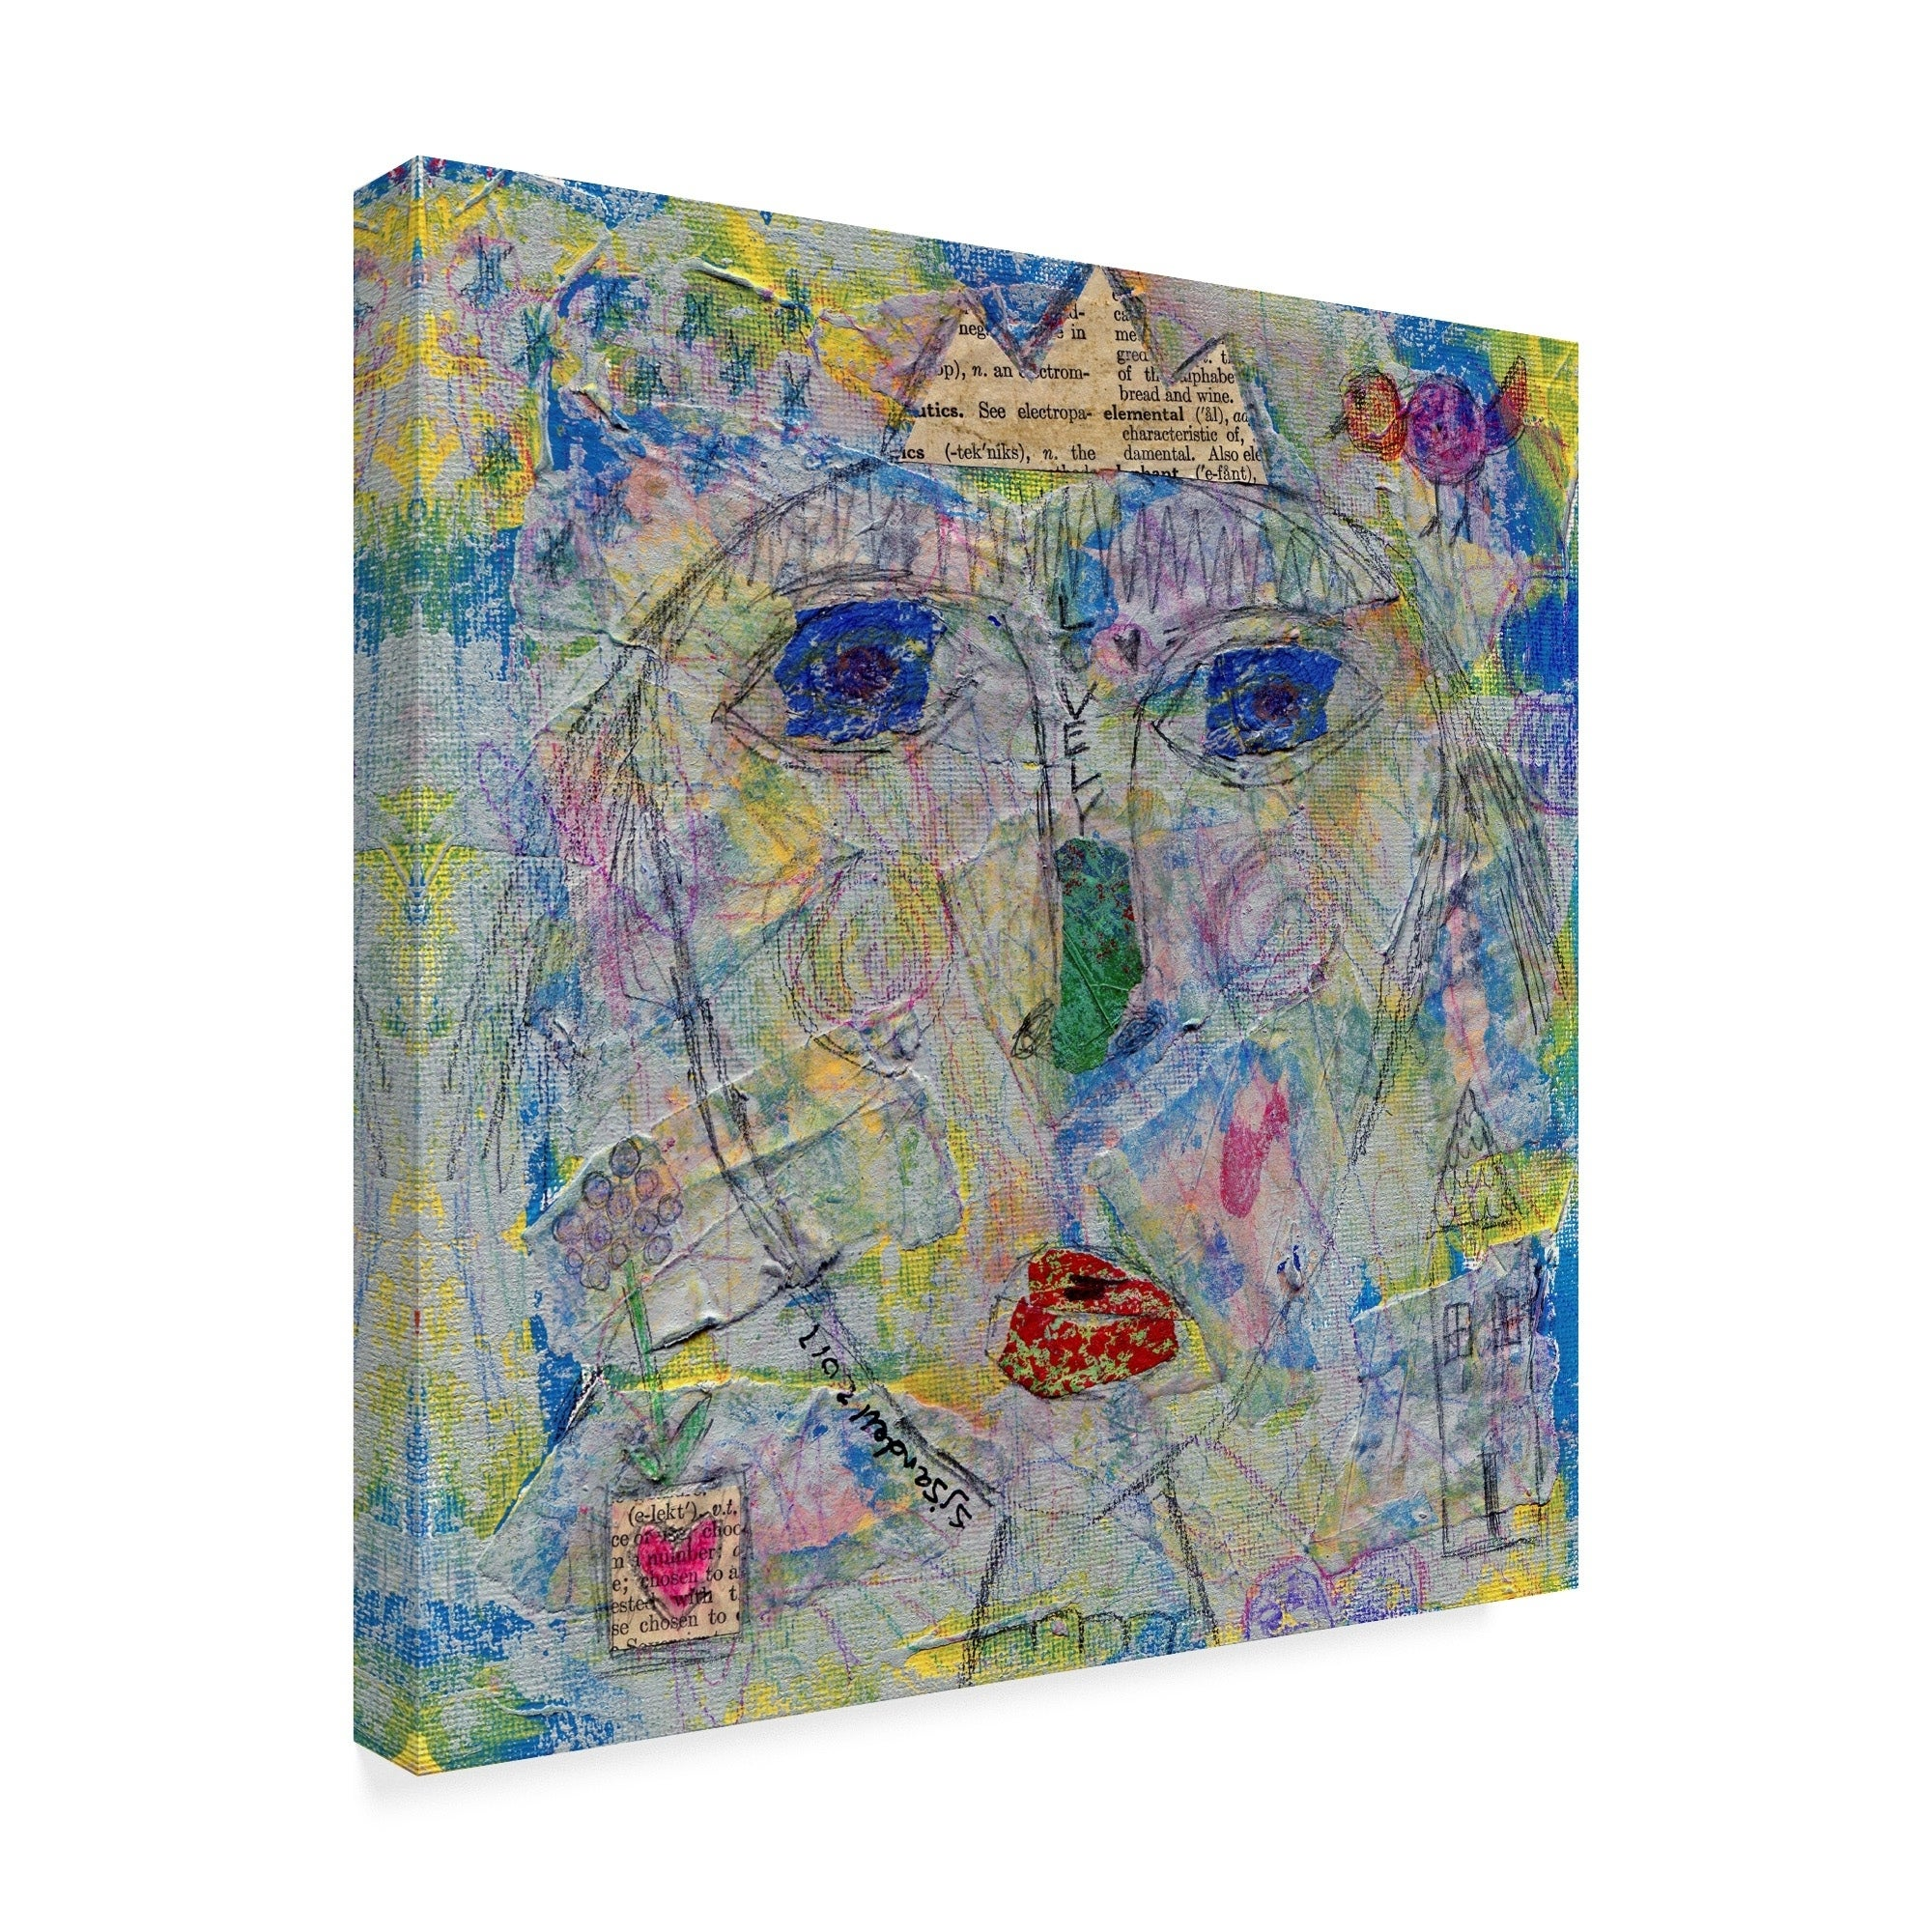 Funked Up Art 'Lovely Queen' Canvas Art - Multi-color